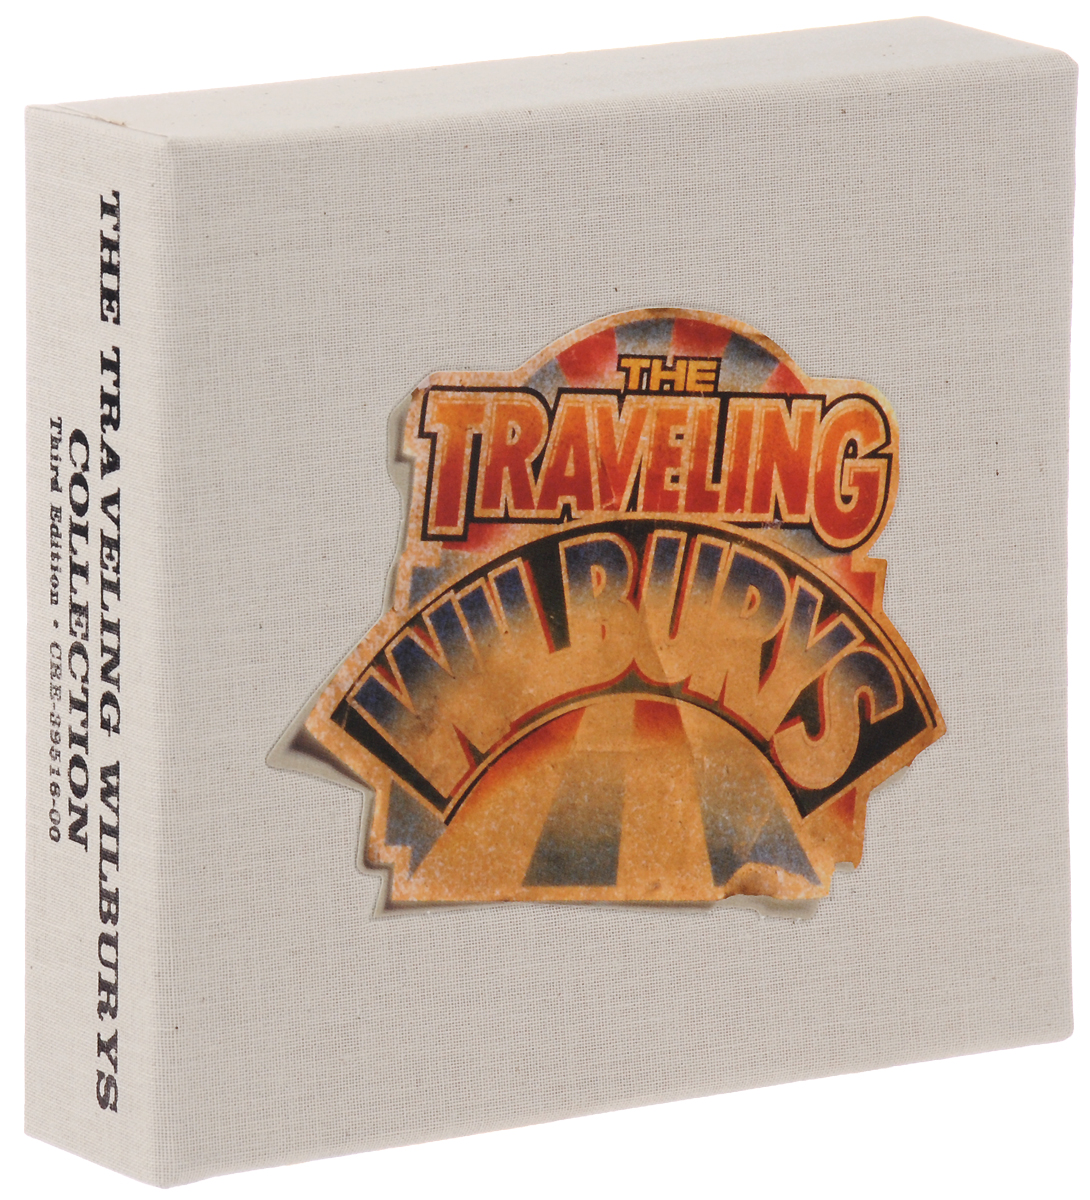 The Traveling Wilburys The Traveling Wilburys. The Traveling Wilburys Collection (2 CD + DVD) the heir